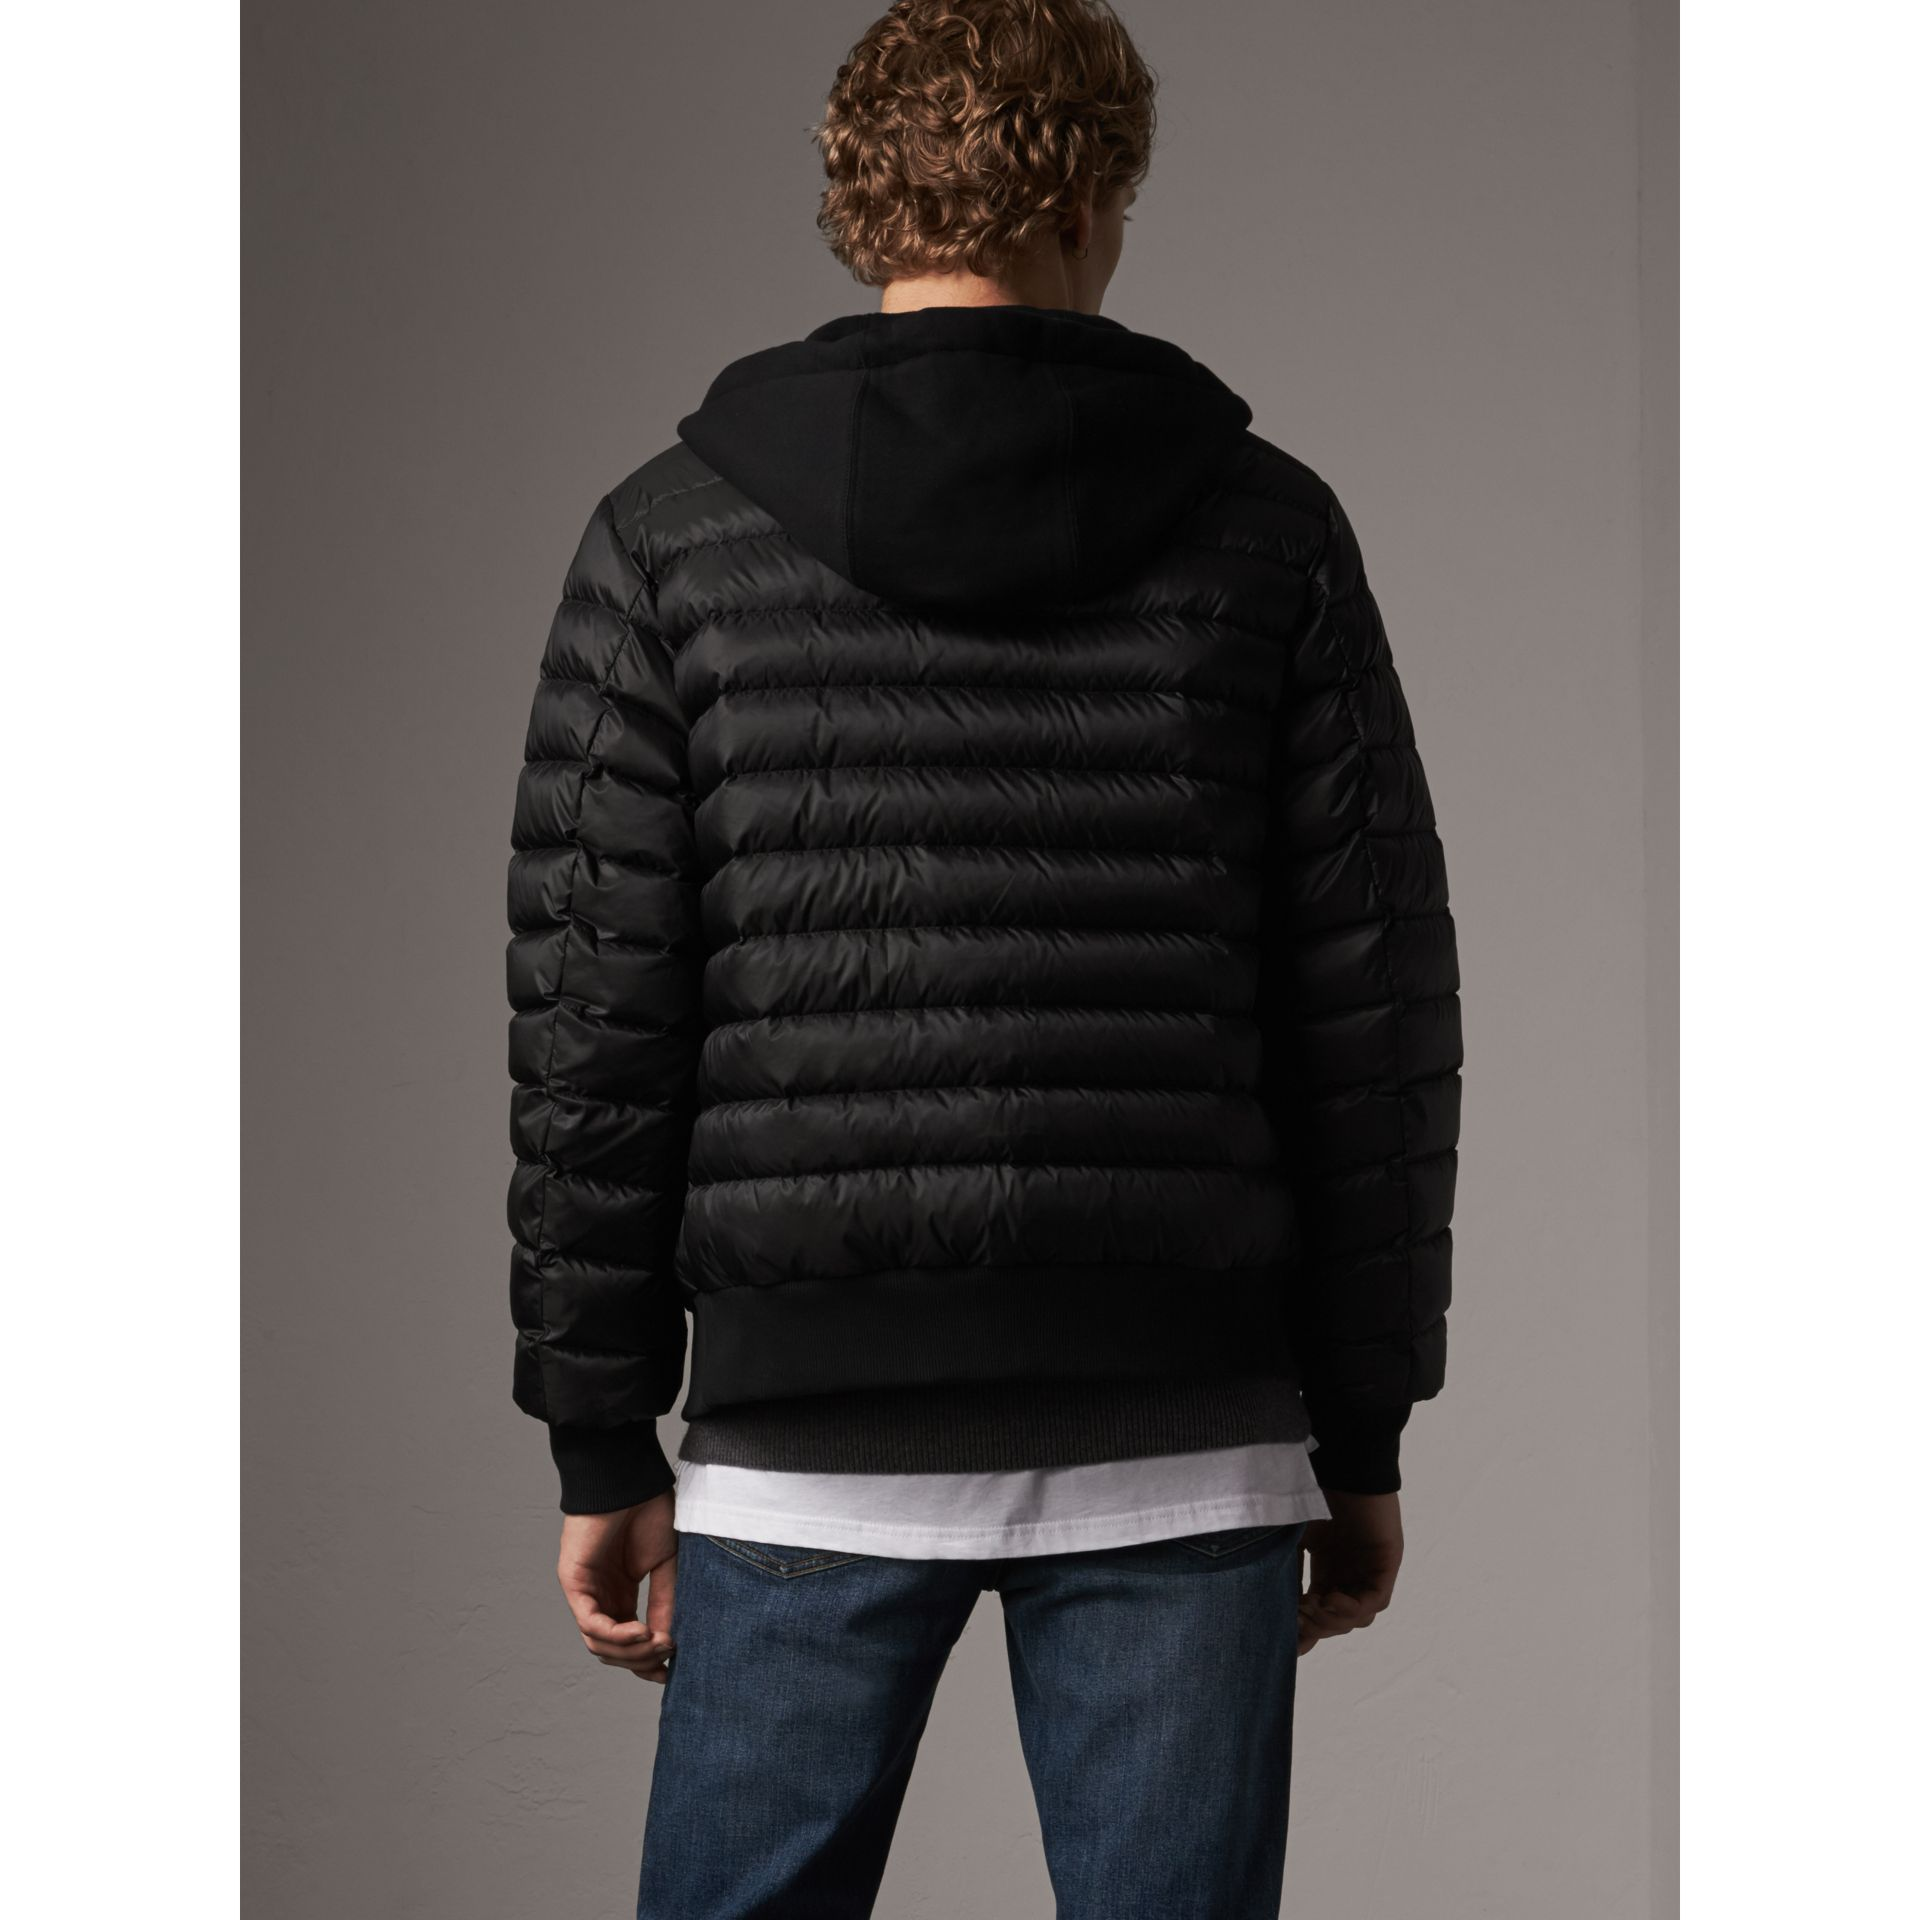 73d79125a31 Reversible Down-filled Hooded Bomber Jack... — Thread